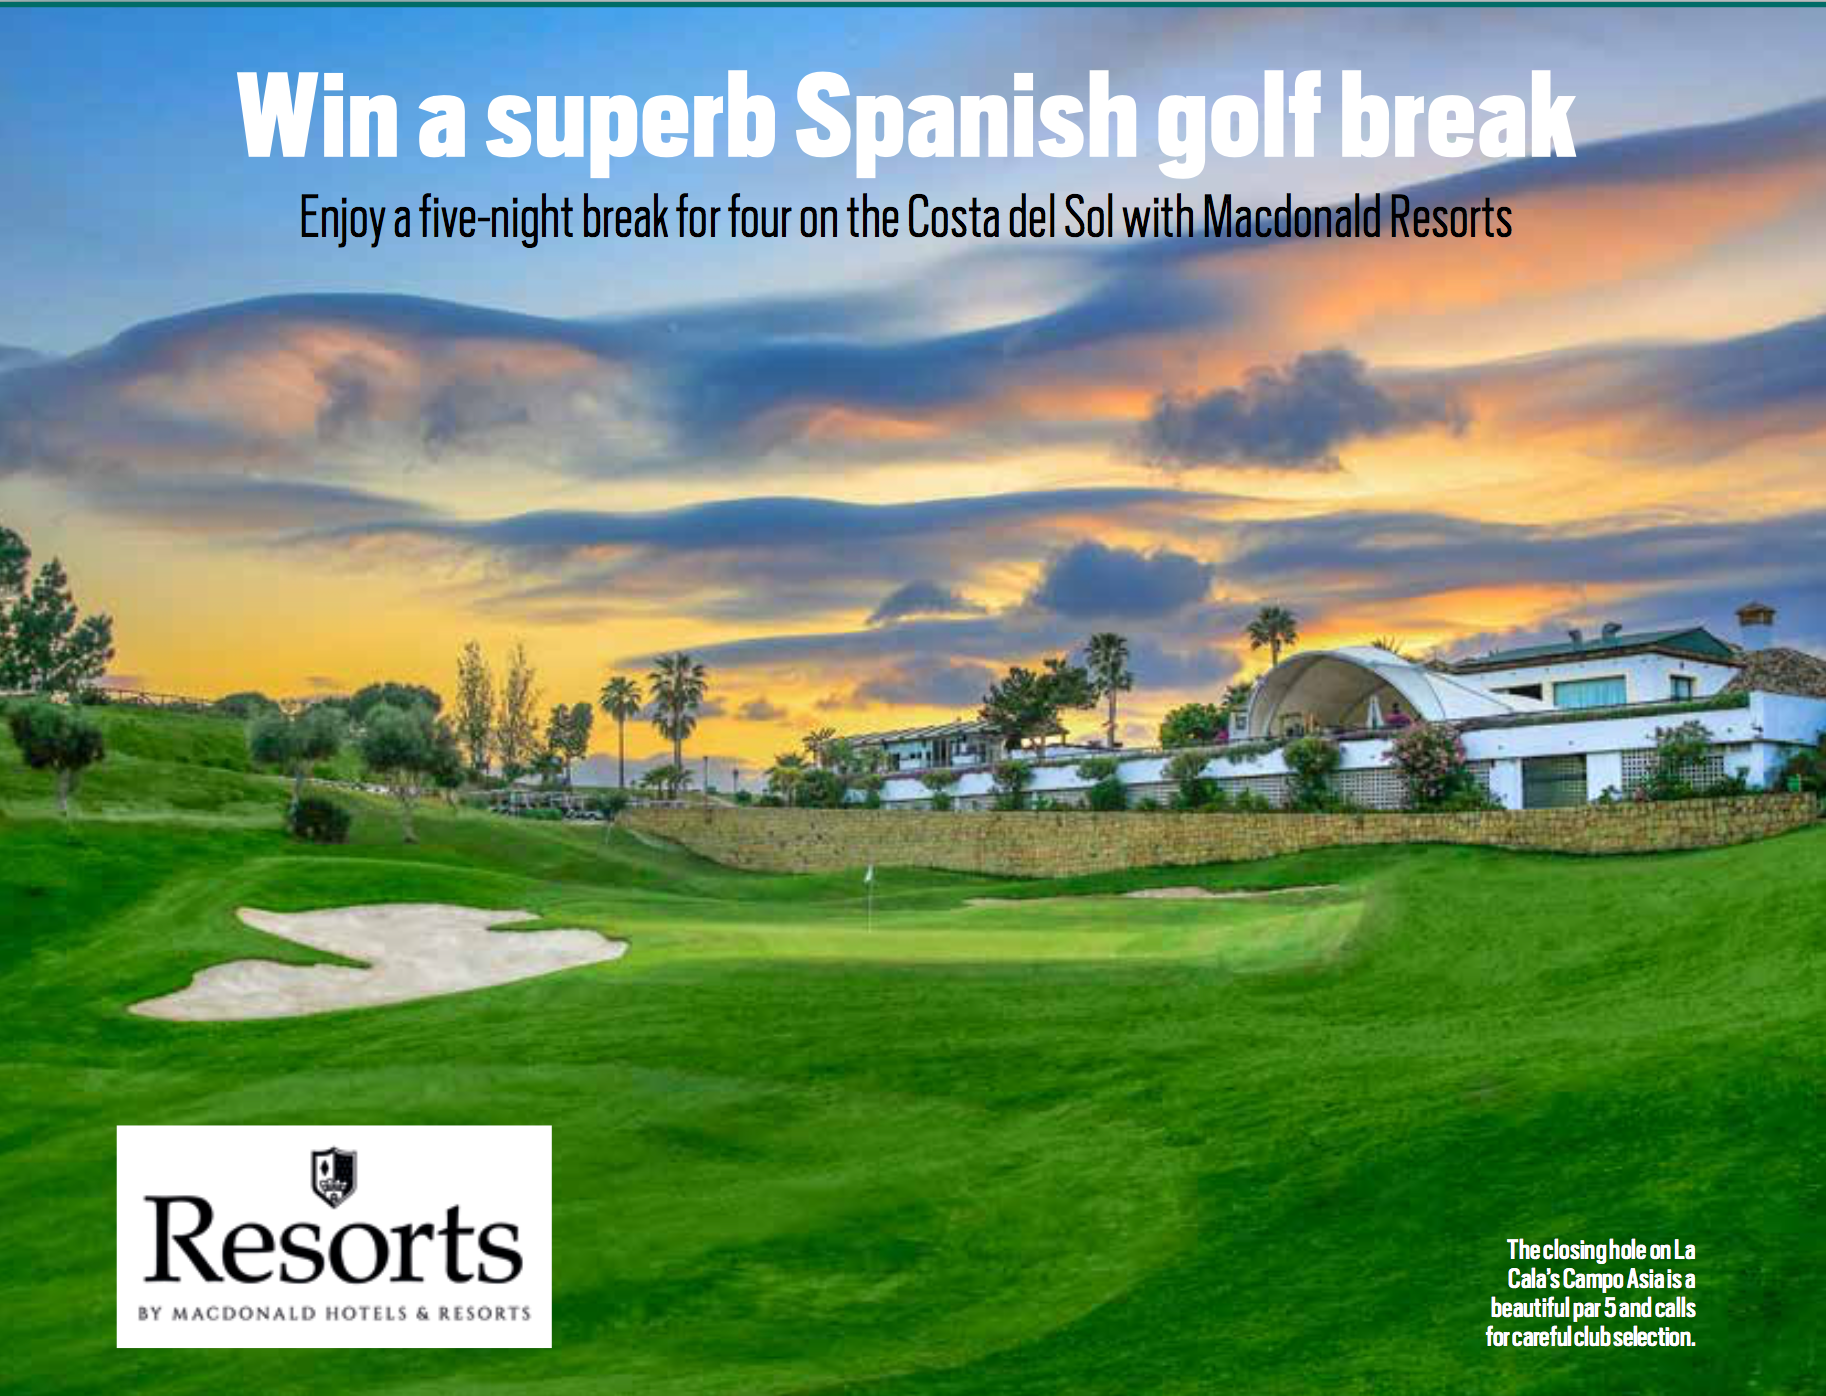 Win a superb Spanish golf break sweepstakes